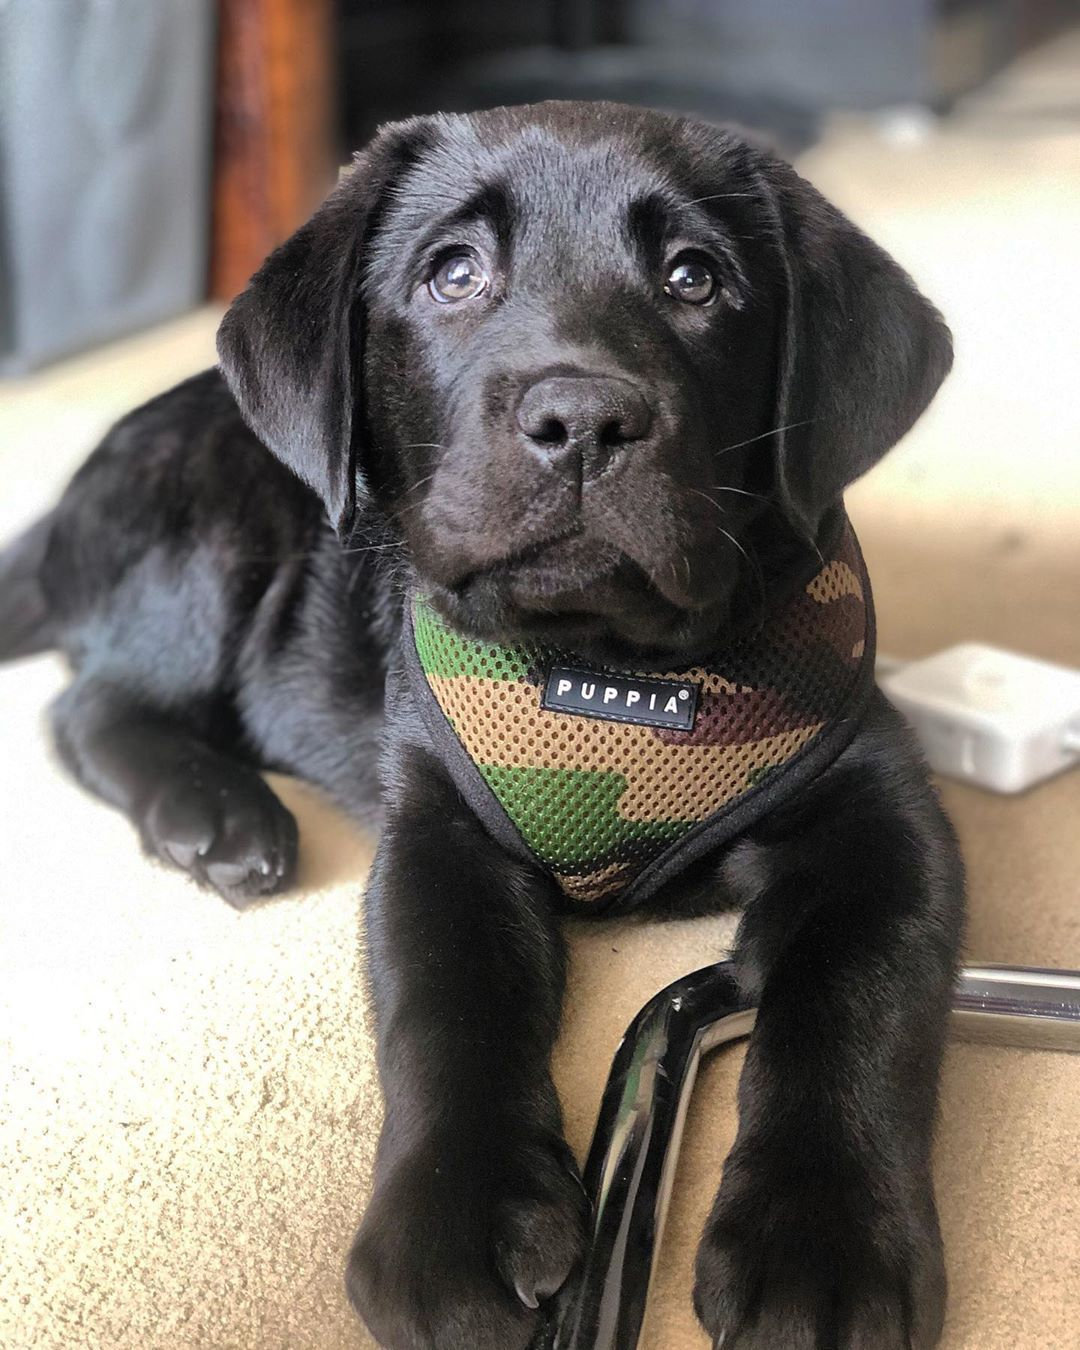 Black Lab Puppy If You Love Labradors Visit Our Blog Labrador Labradorretriever Labradorcentral Ret In 2020 Lab Puppies Labrador Retriever Black Lab Puppies